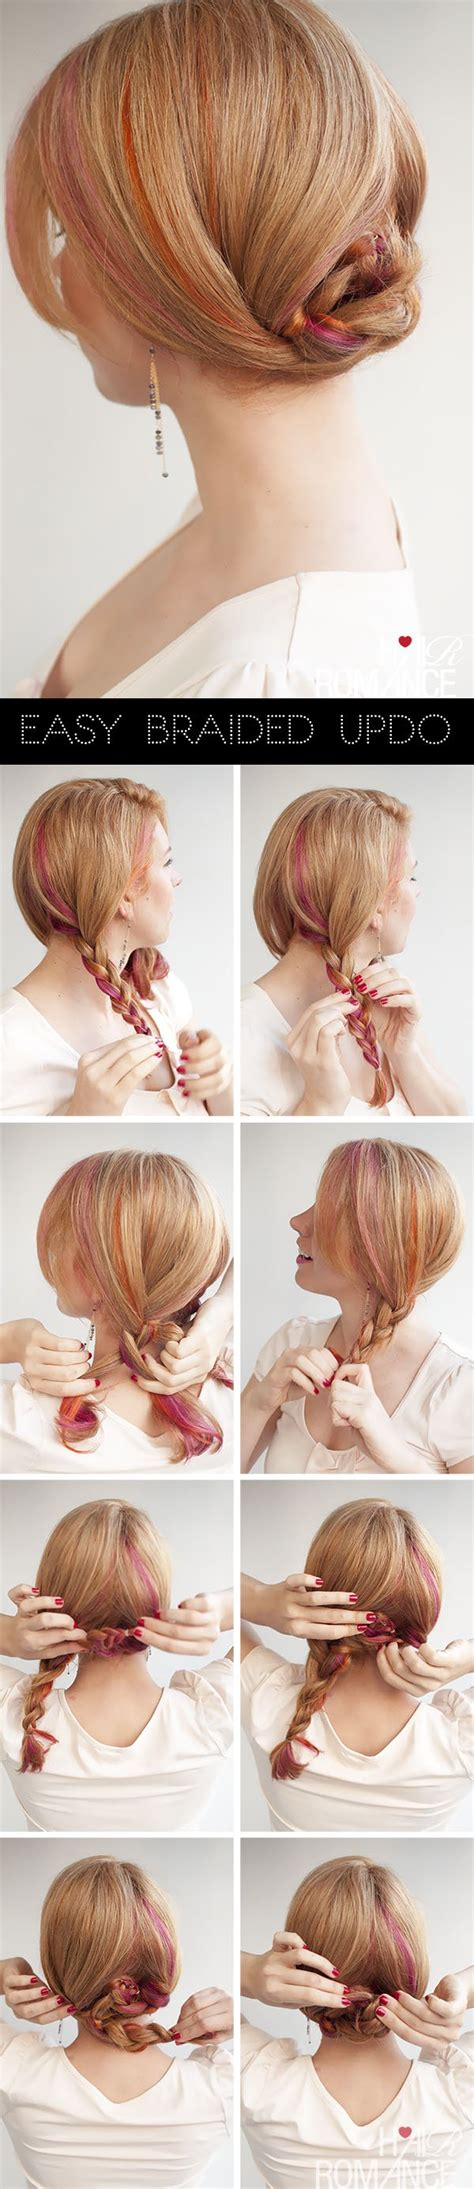 braided hairstyle instructions step by step 15 fancy up do tutorials